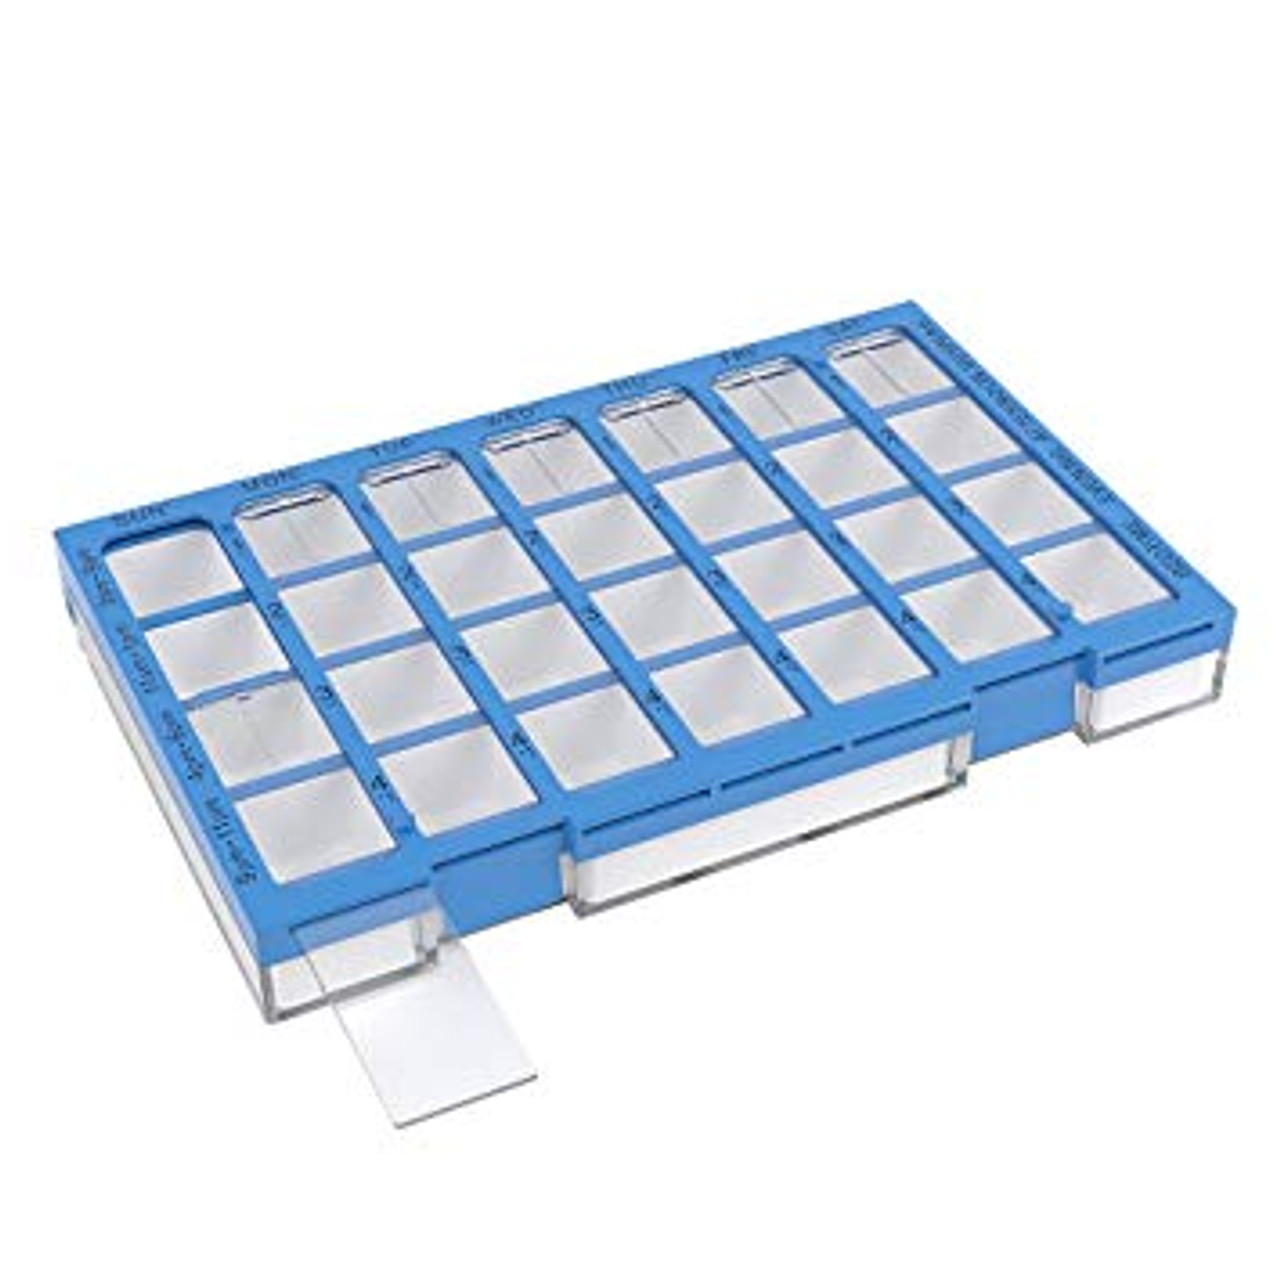 Super Jumbo Size 7 day 4 Times a Day Pill Organizer